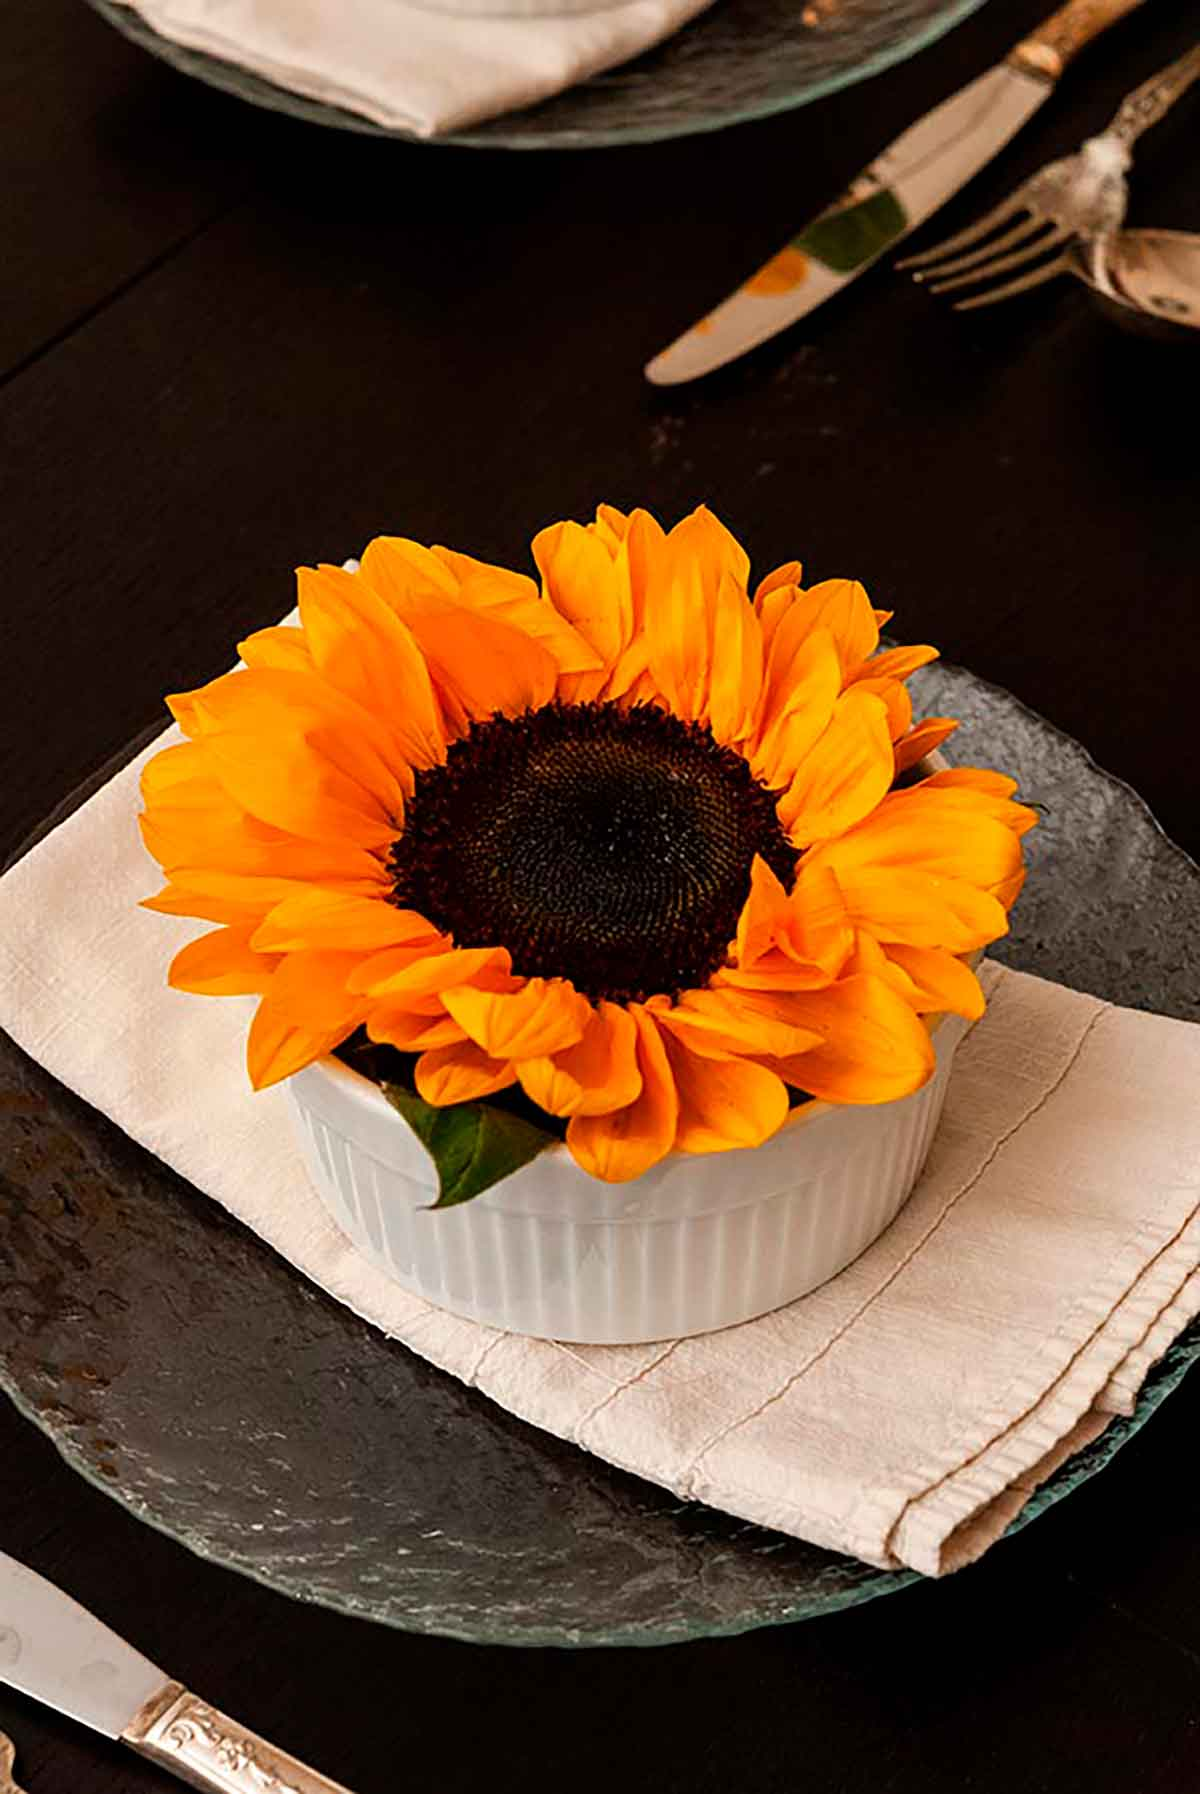 A sunflower in a soup bowl, on top of a folded napkin, on top of a plate on a table.